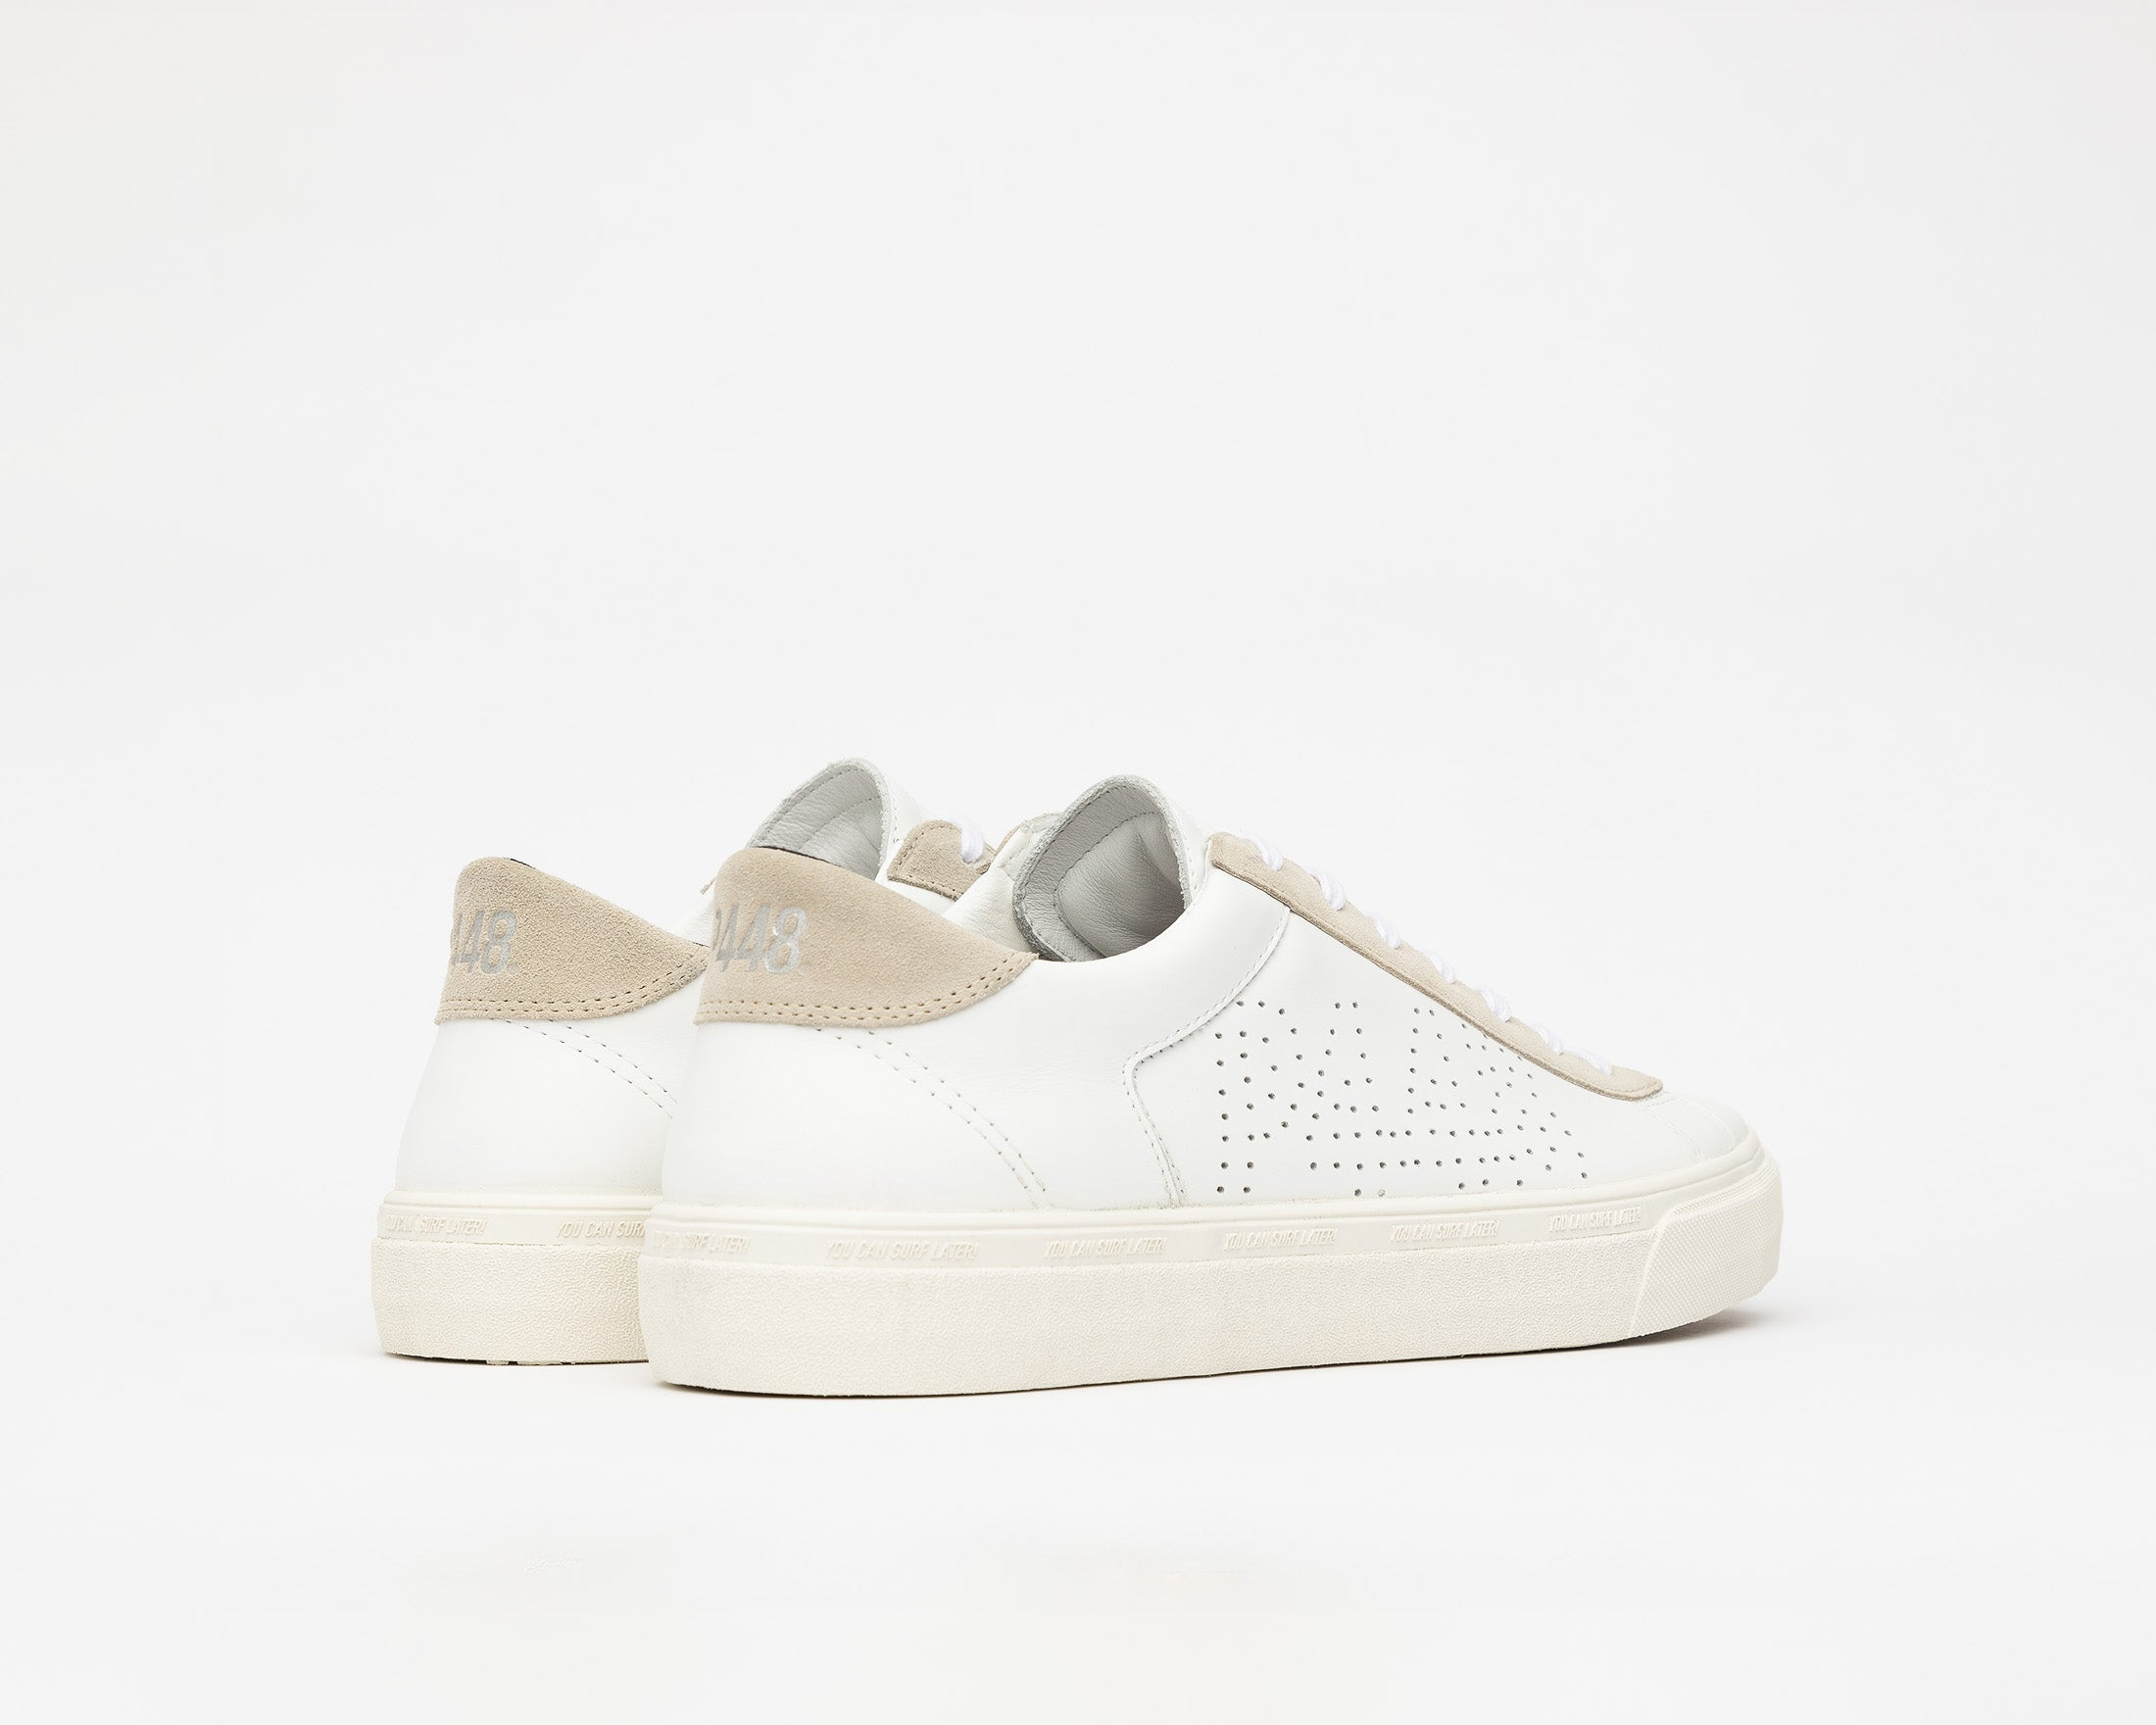 Y.C.S.L. Low-Top Volcanized Sneaker in White/Sand - Back